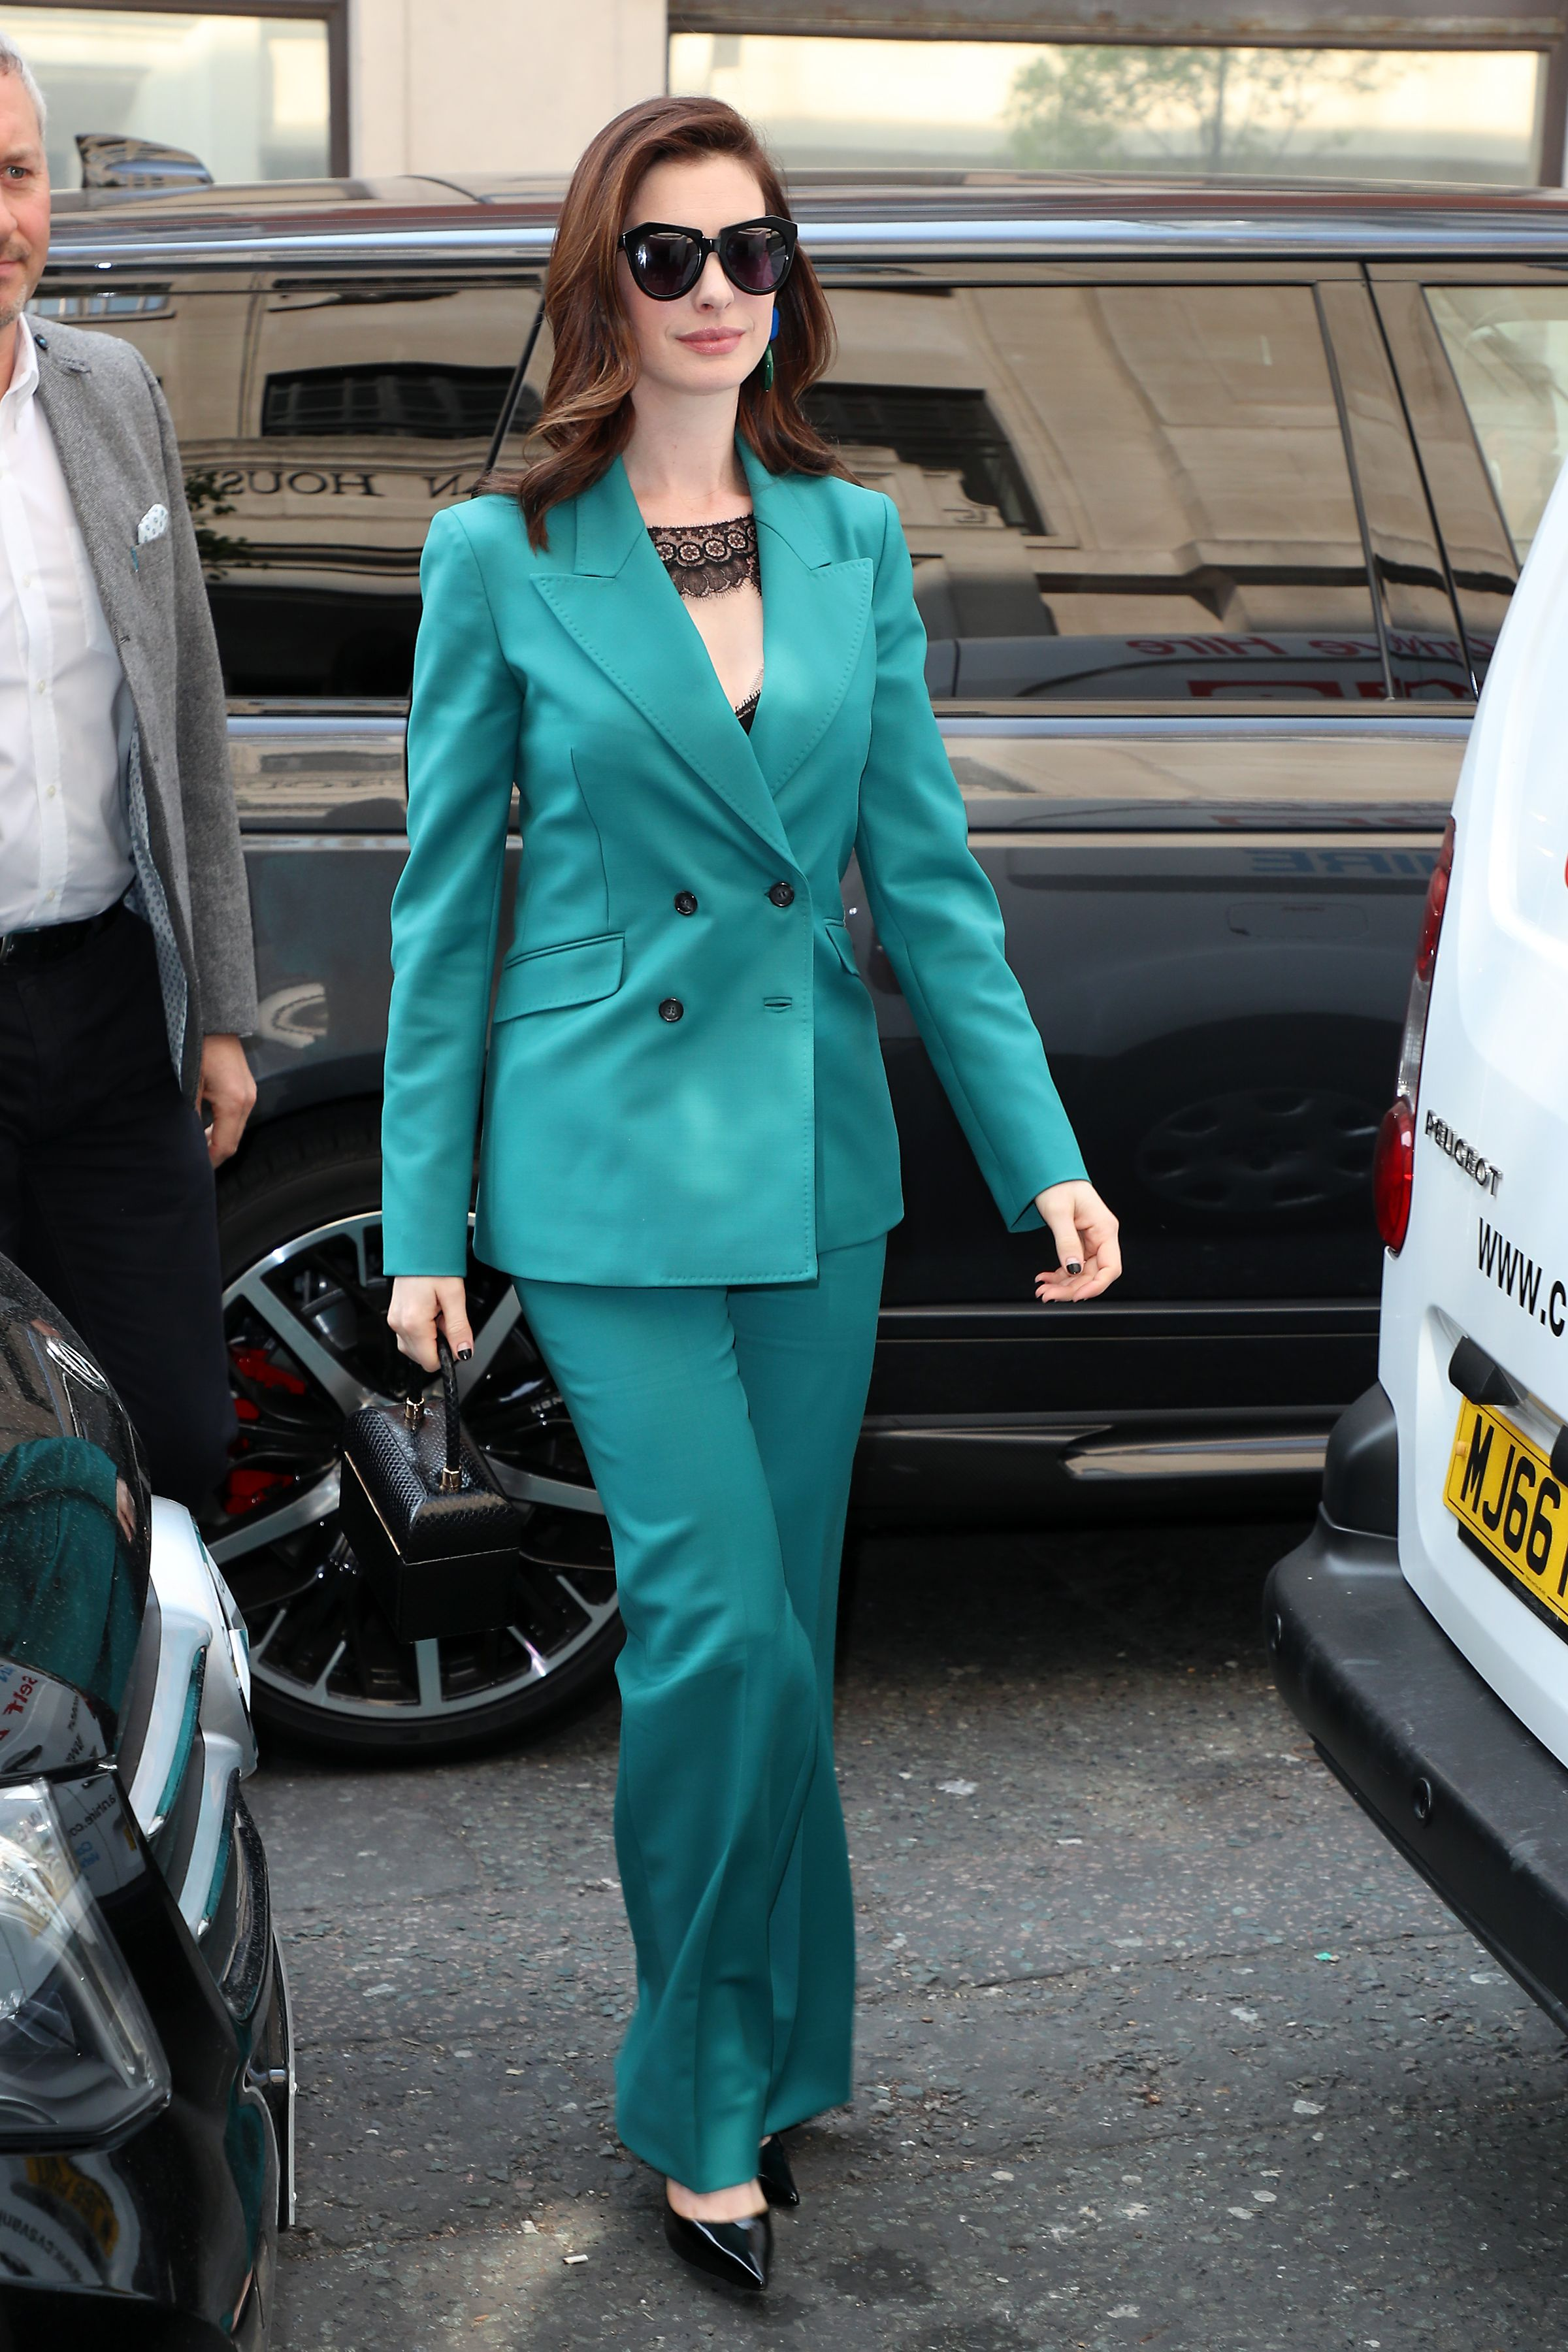 anne hathaway bộ suit xanh teal